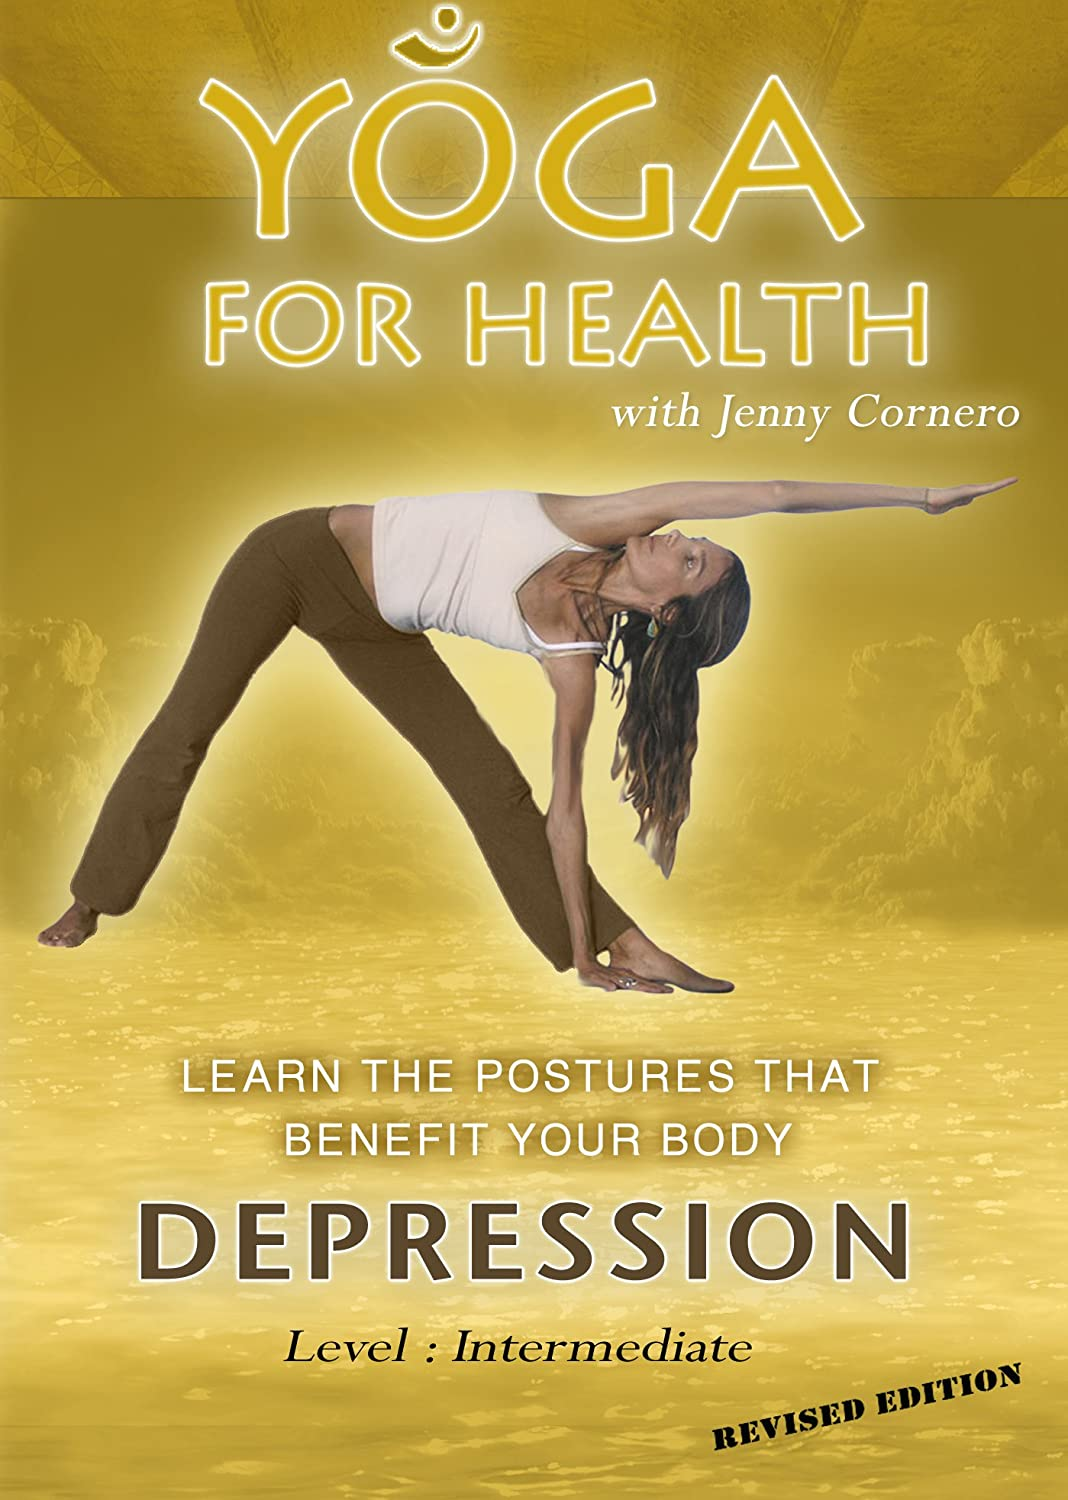 Yoga For Health DEPRESSION With Jenny Cornero PAL DVD Reino ...